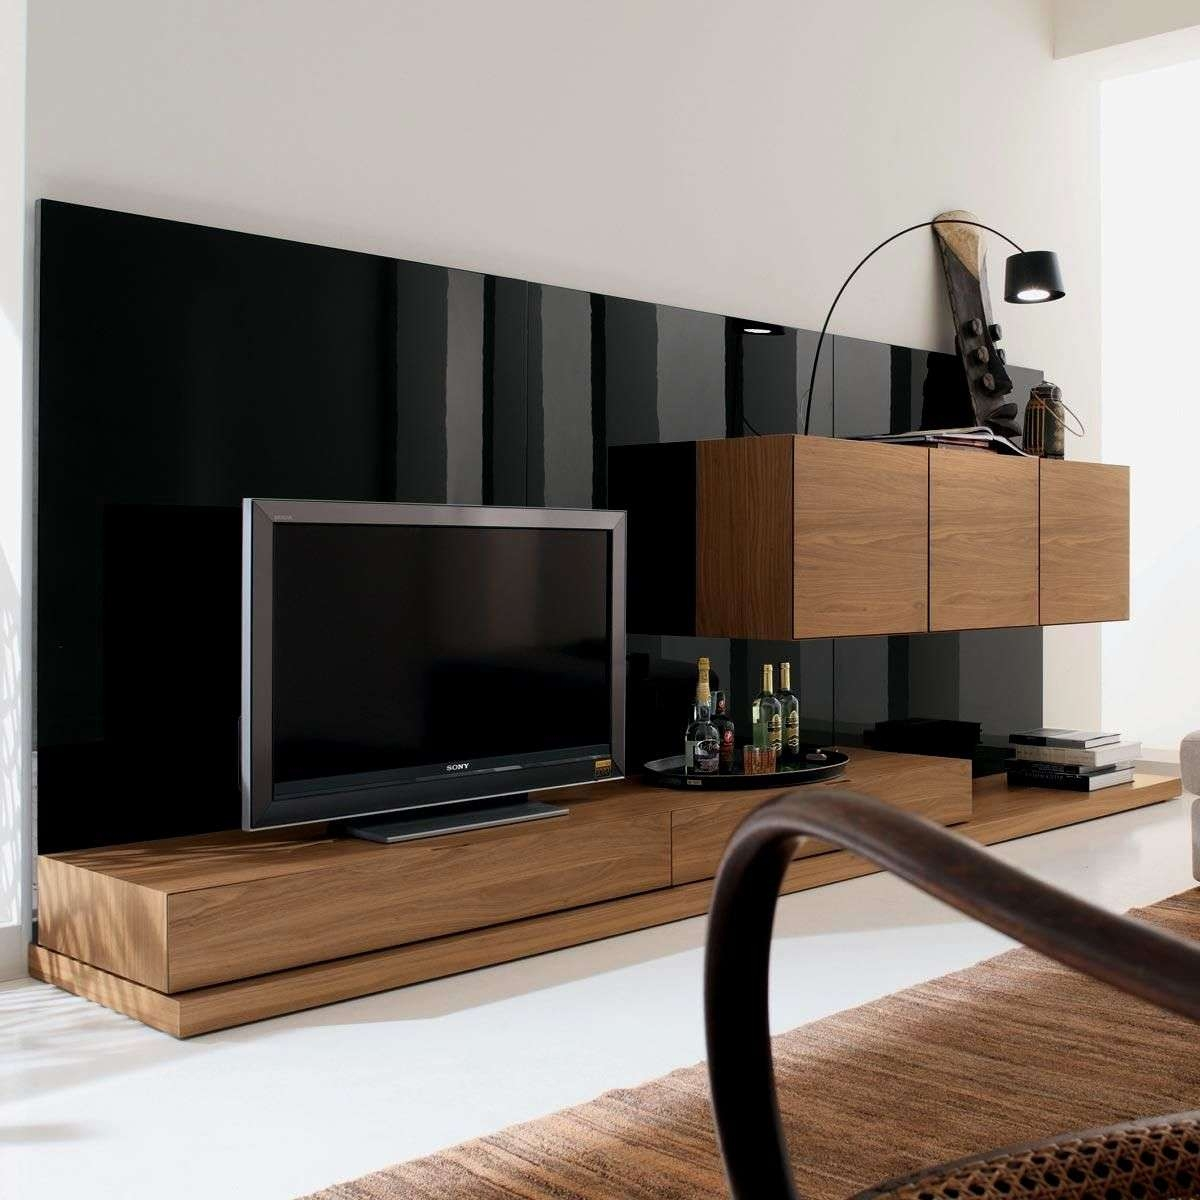 Home Design Modern Tv Cabinet Fantastic | Zhydoor For Modern Tv Cabinets (View 20 of 20)